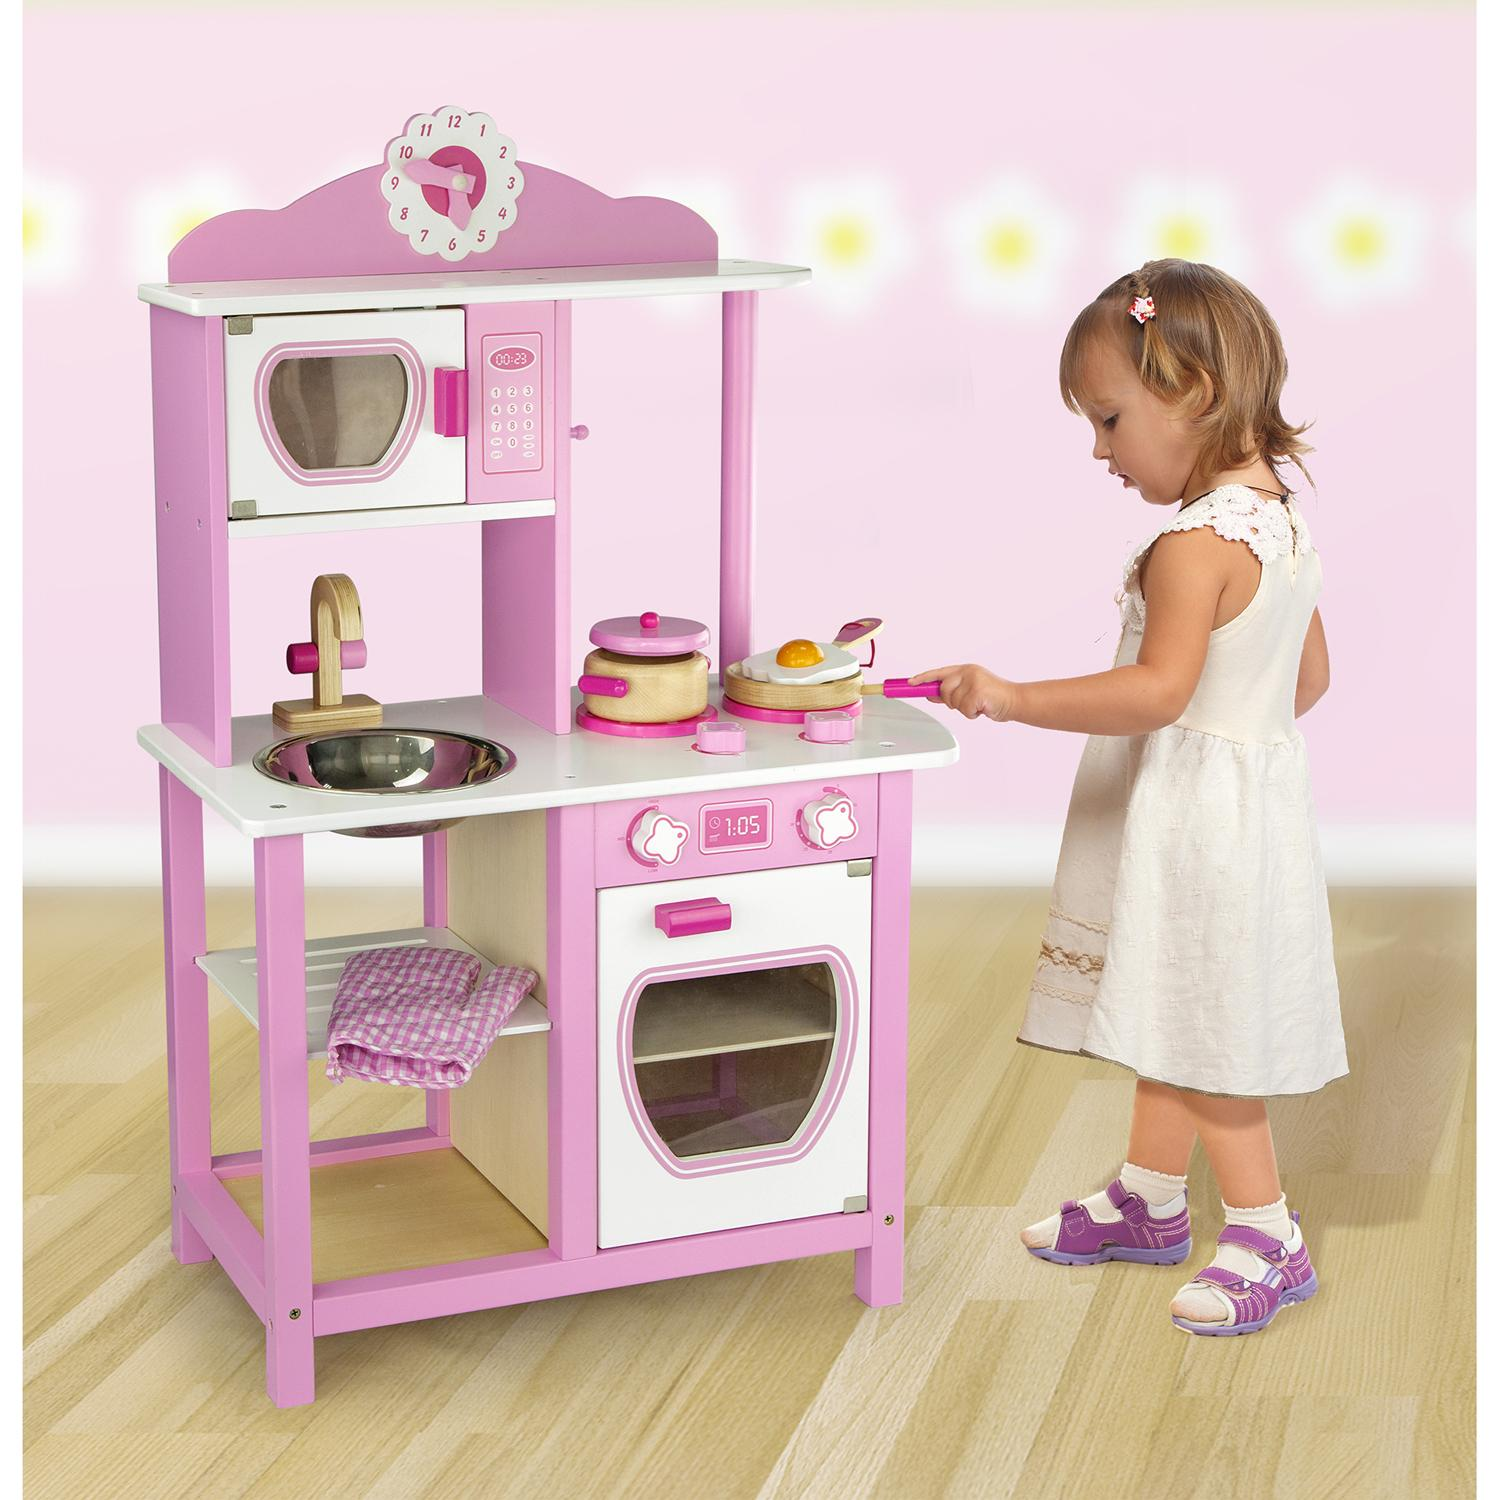 Childrens Kids Pink Wooden Pretend Play Kitchen Toy Play Set Oven Sink Hob Pans Ebay